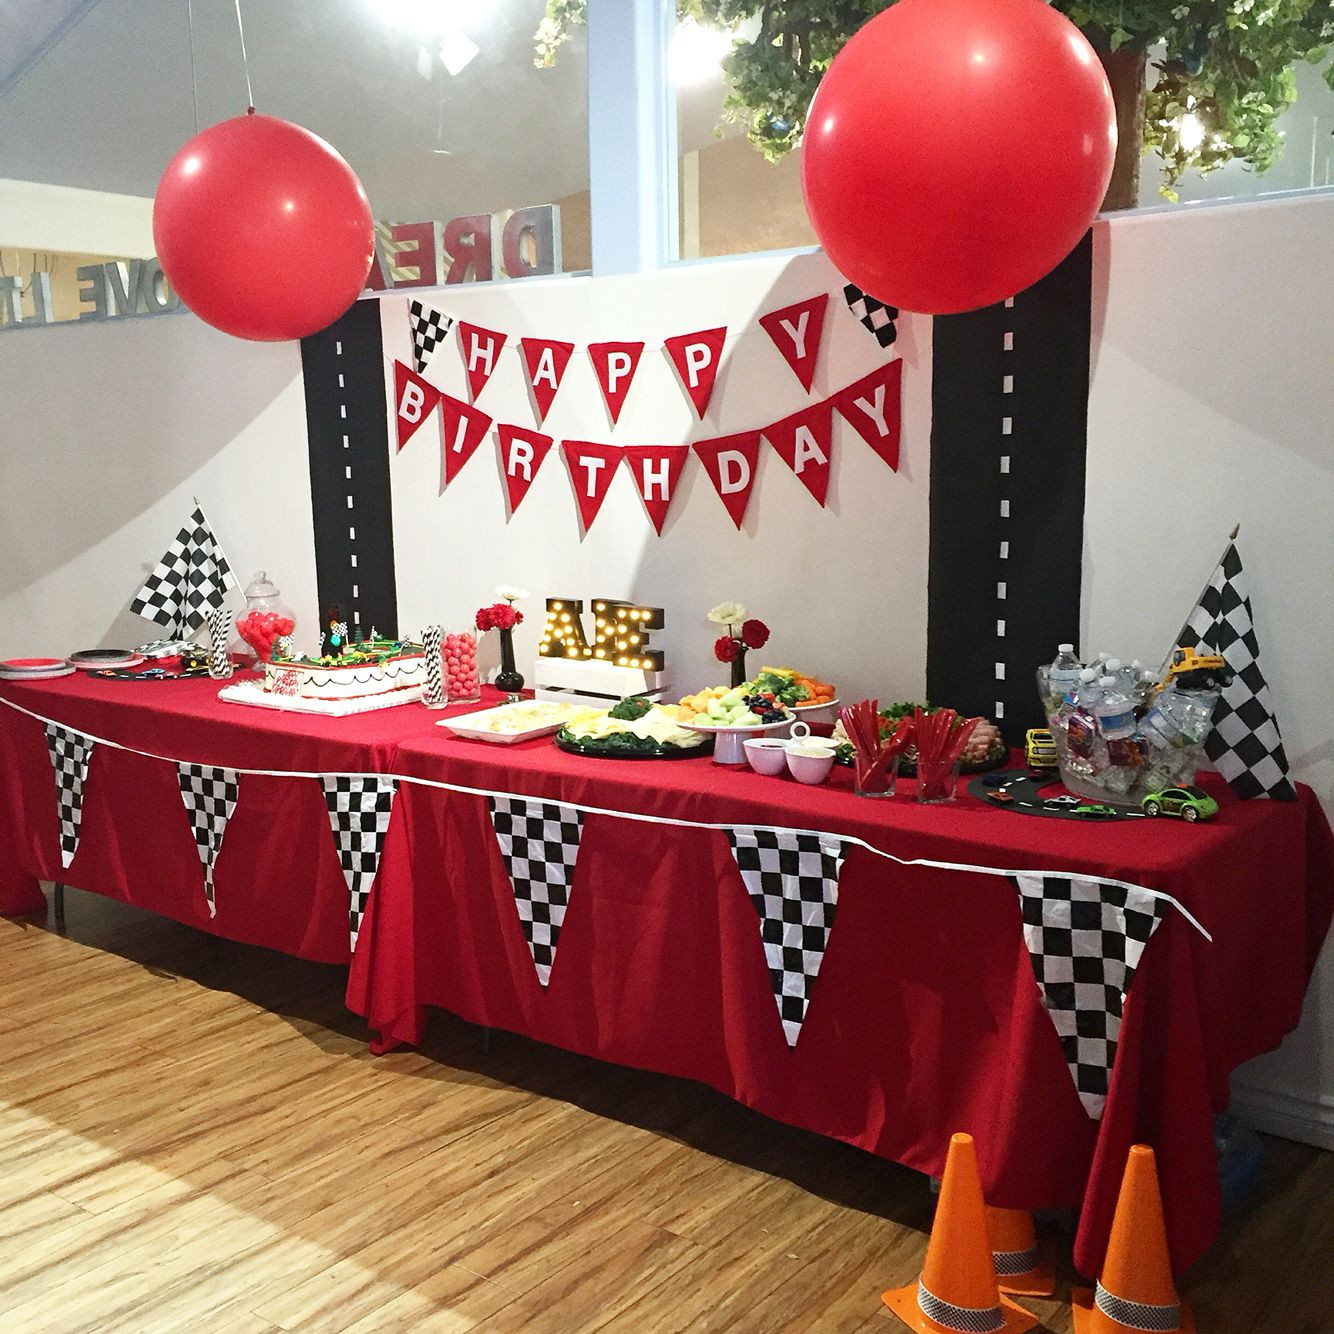 Best ideas about Cars Themed Birthday Party . Save or Pin Cars Party Table decor Disney Cars Theme Now.